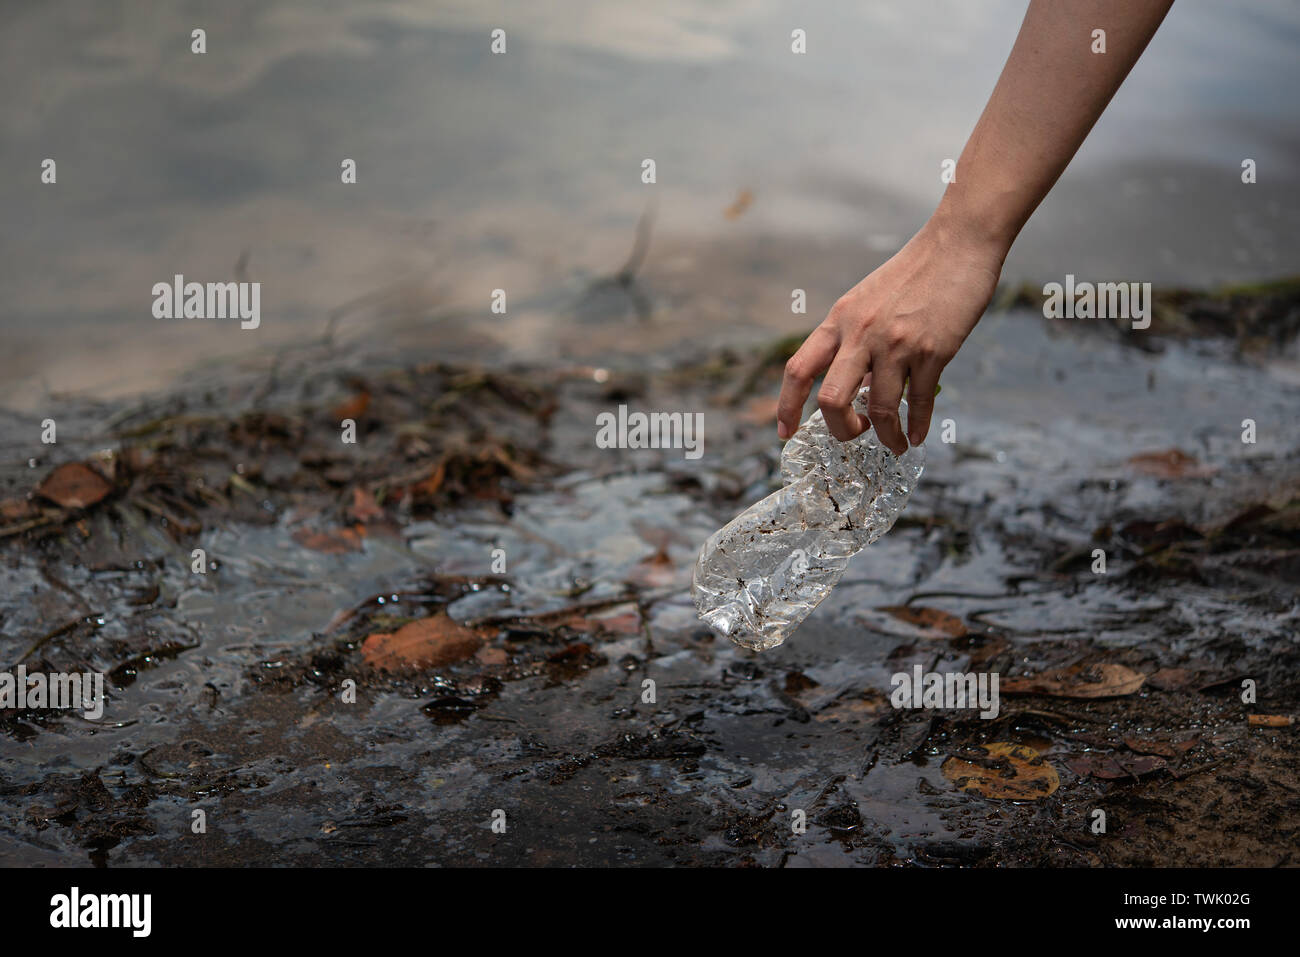 hand pick up plastic bottle from water. save environment and beat plastic pollution , Selective focus - Stock Image